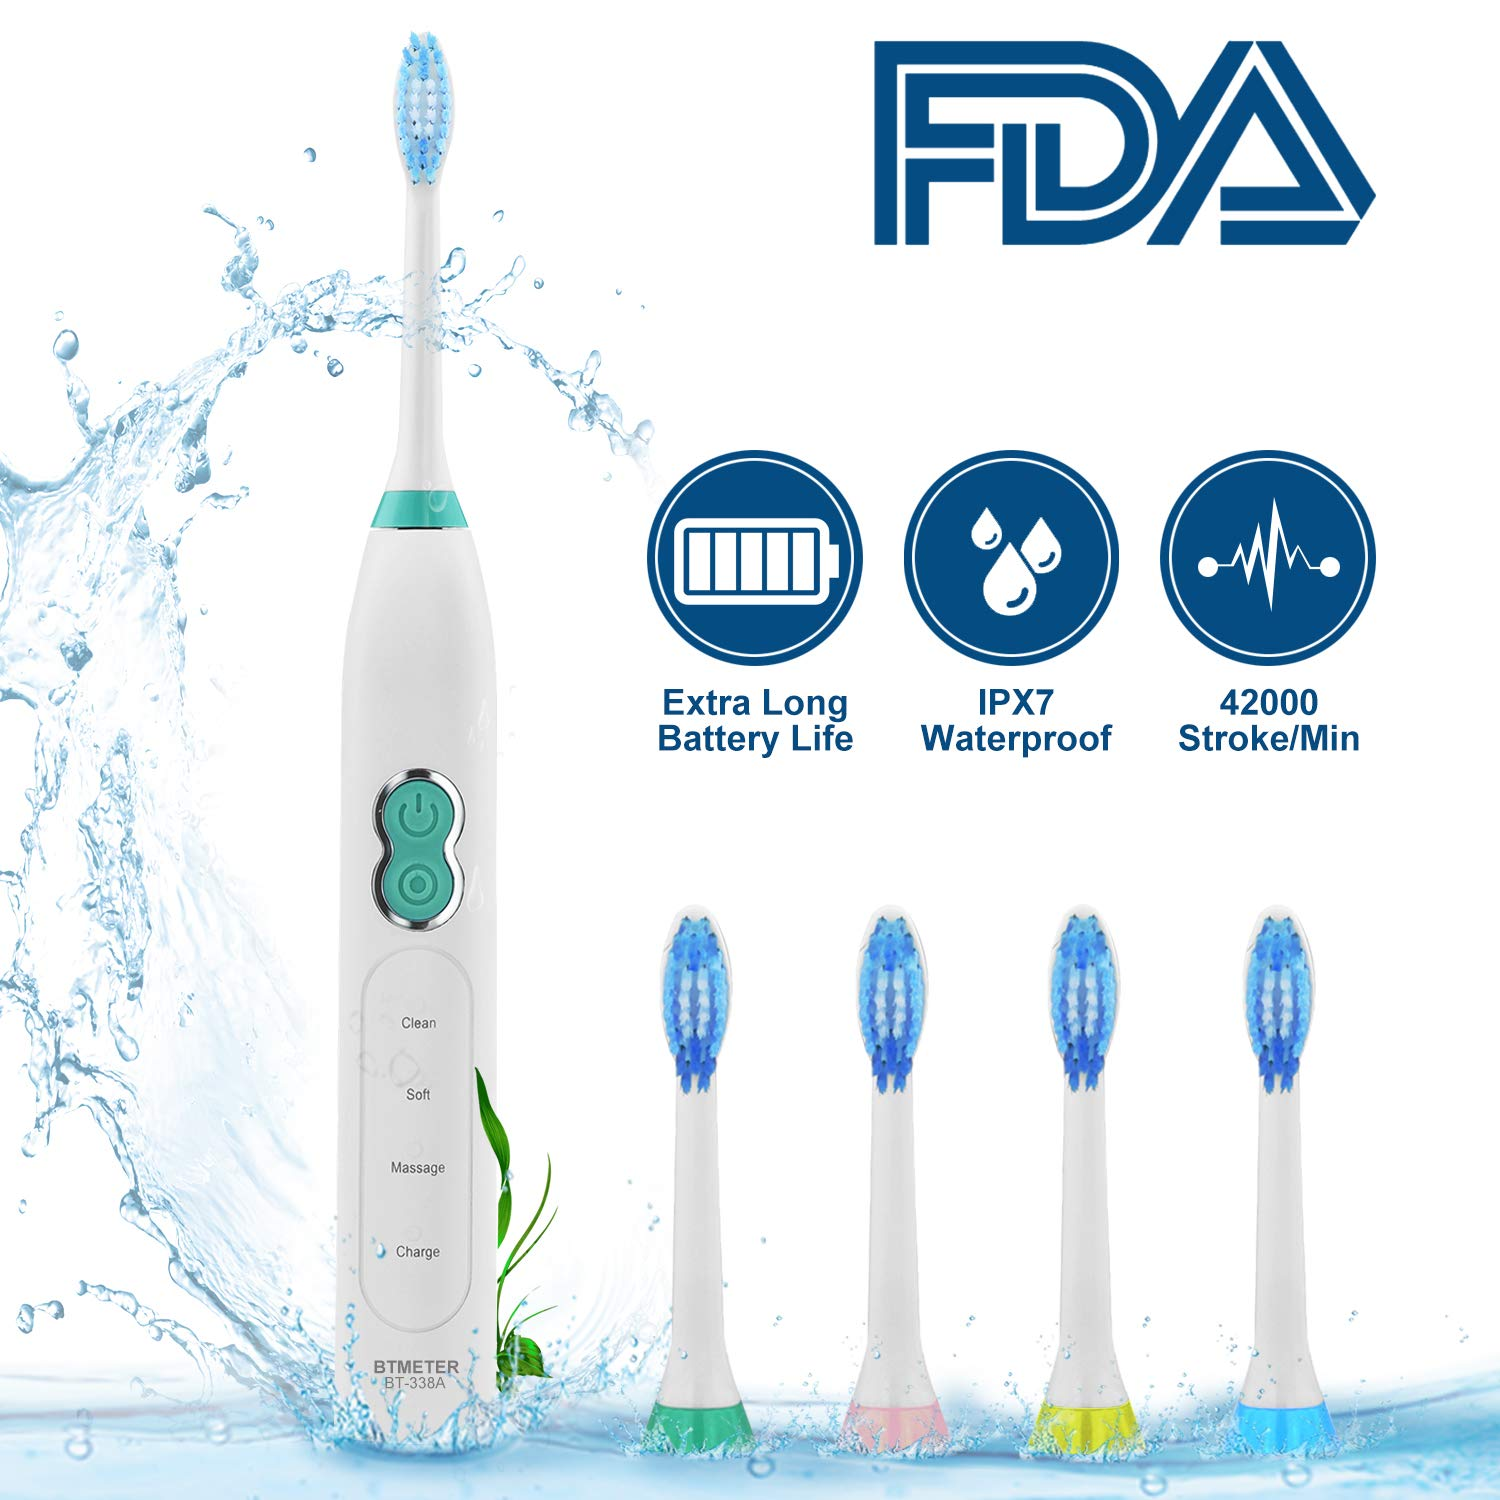 Electric Sonic Rechargeable Toothbrush up to 42000 rpm with Smart Timer,3 Brushing Modes Clean Soft Massage,4 Replacement Heads for DiamondClean,IPX7 Waterproof BTMETER 338A